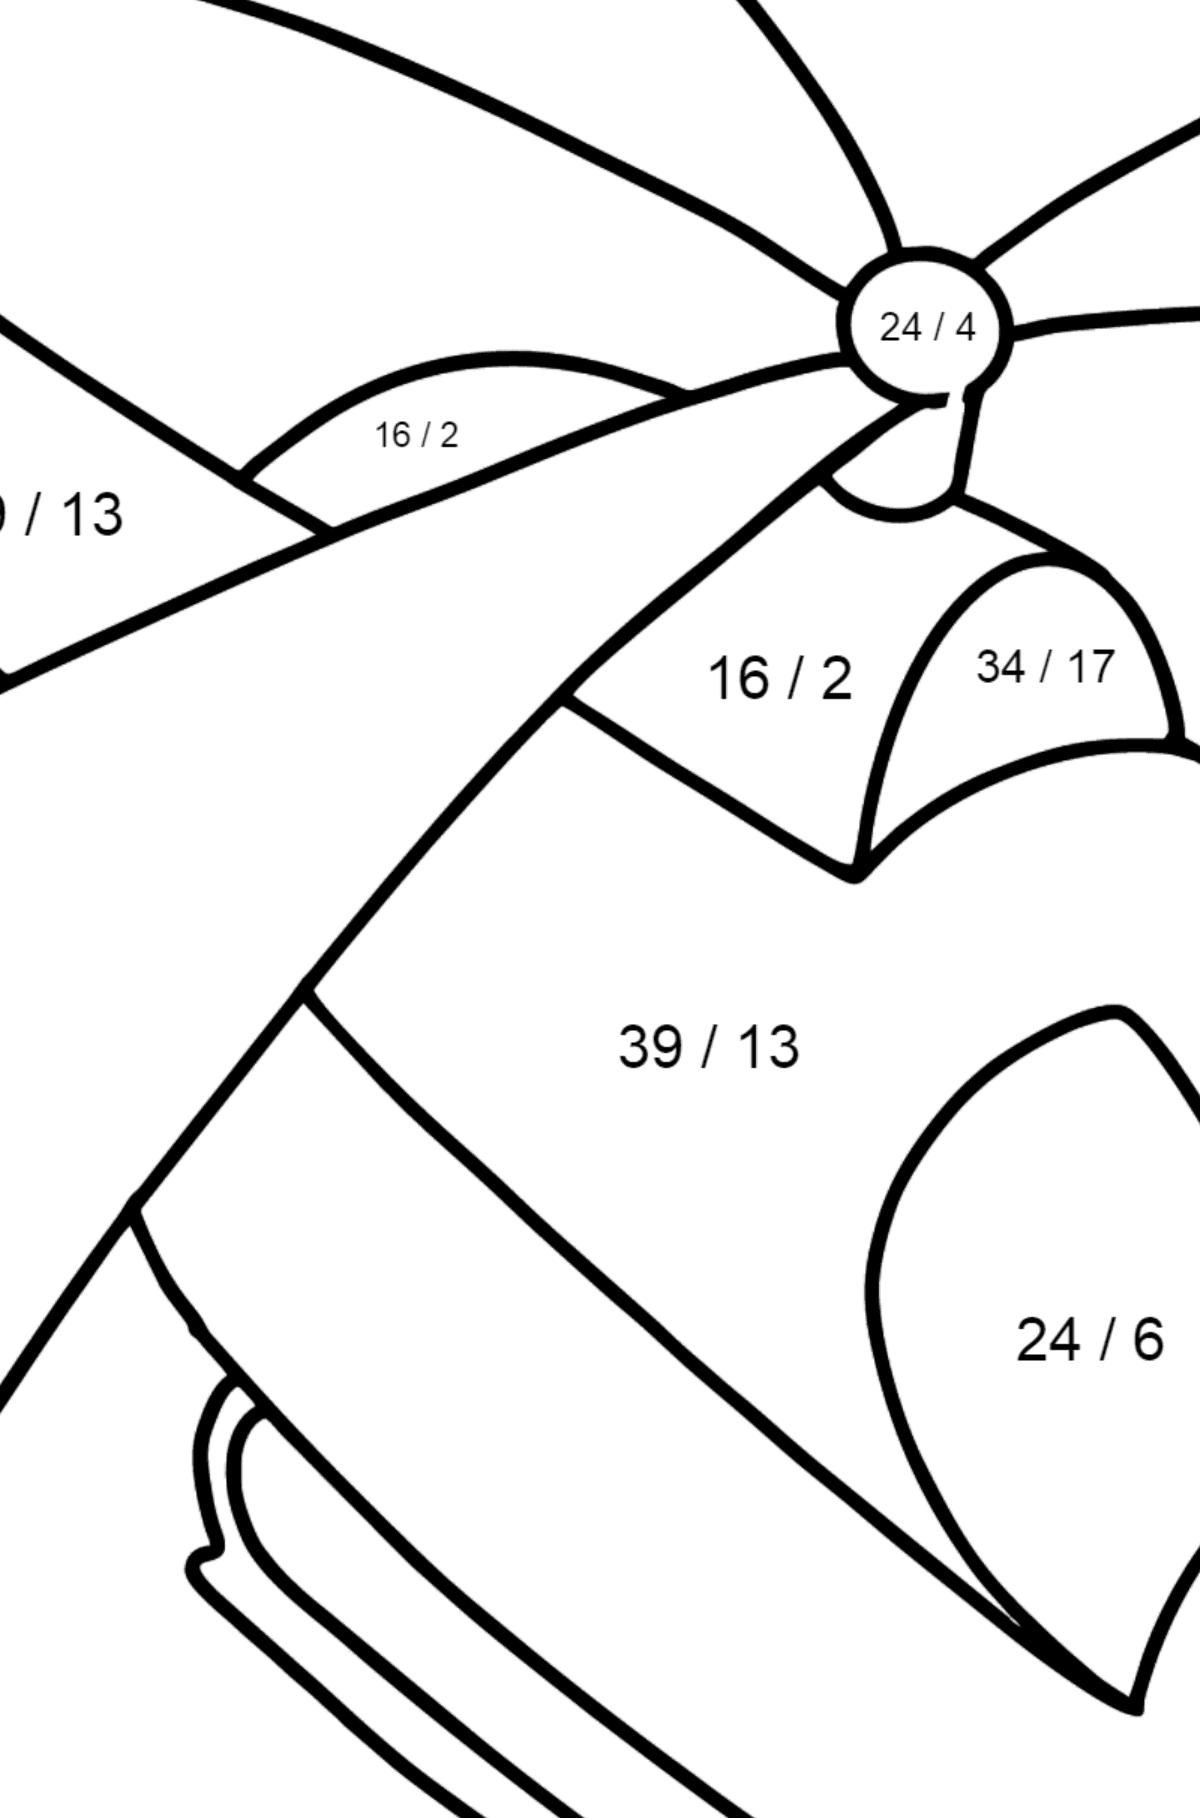 Little Helicopter coloring page - Math Coloring - Division for Kids